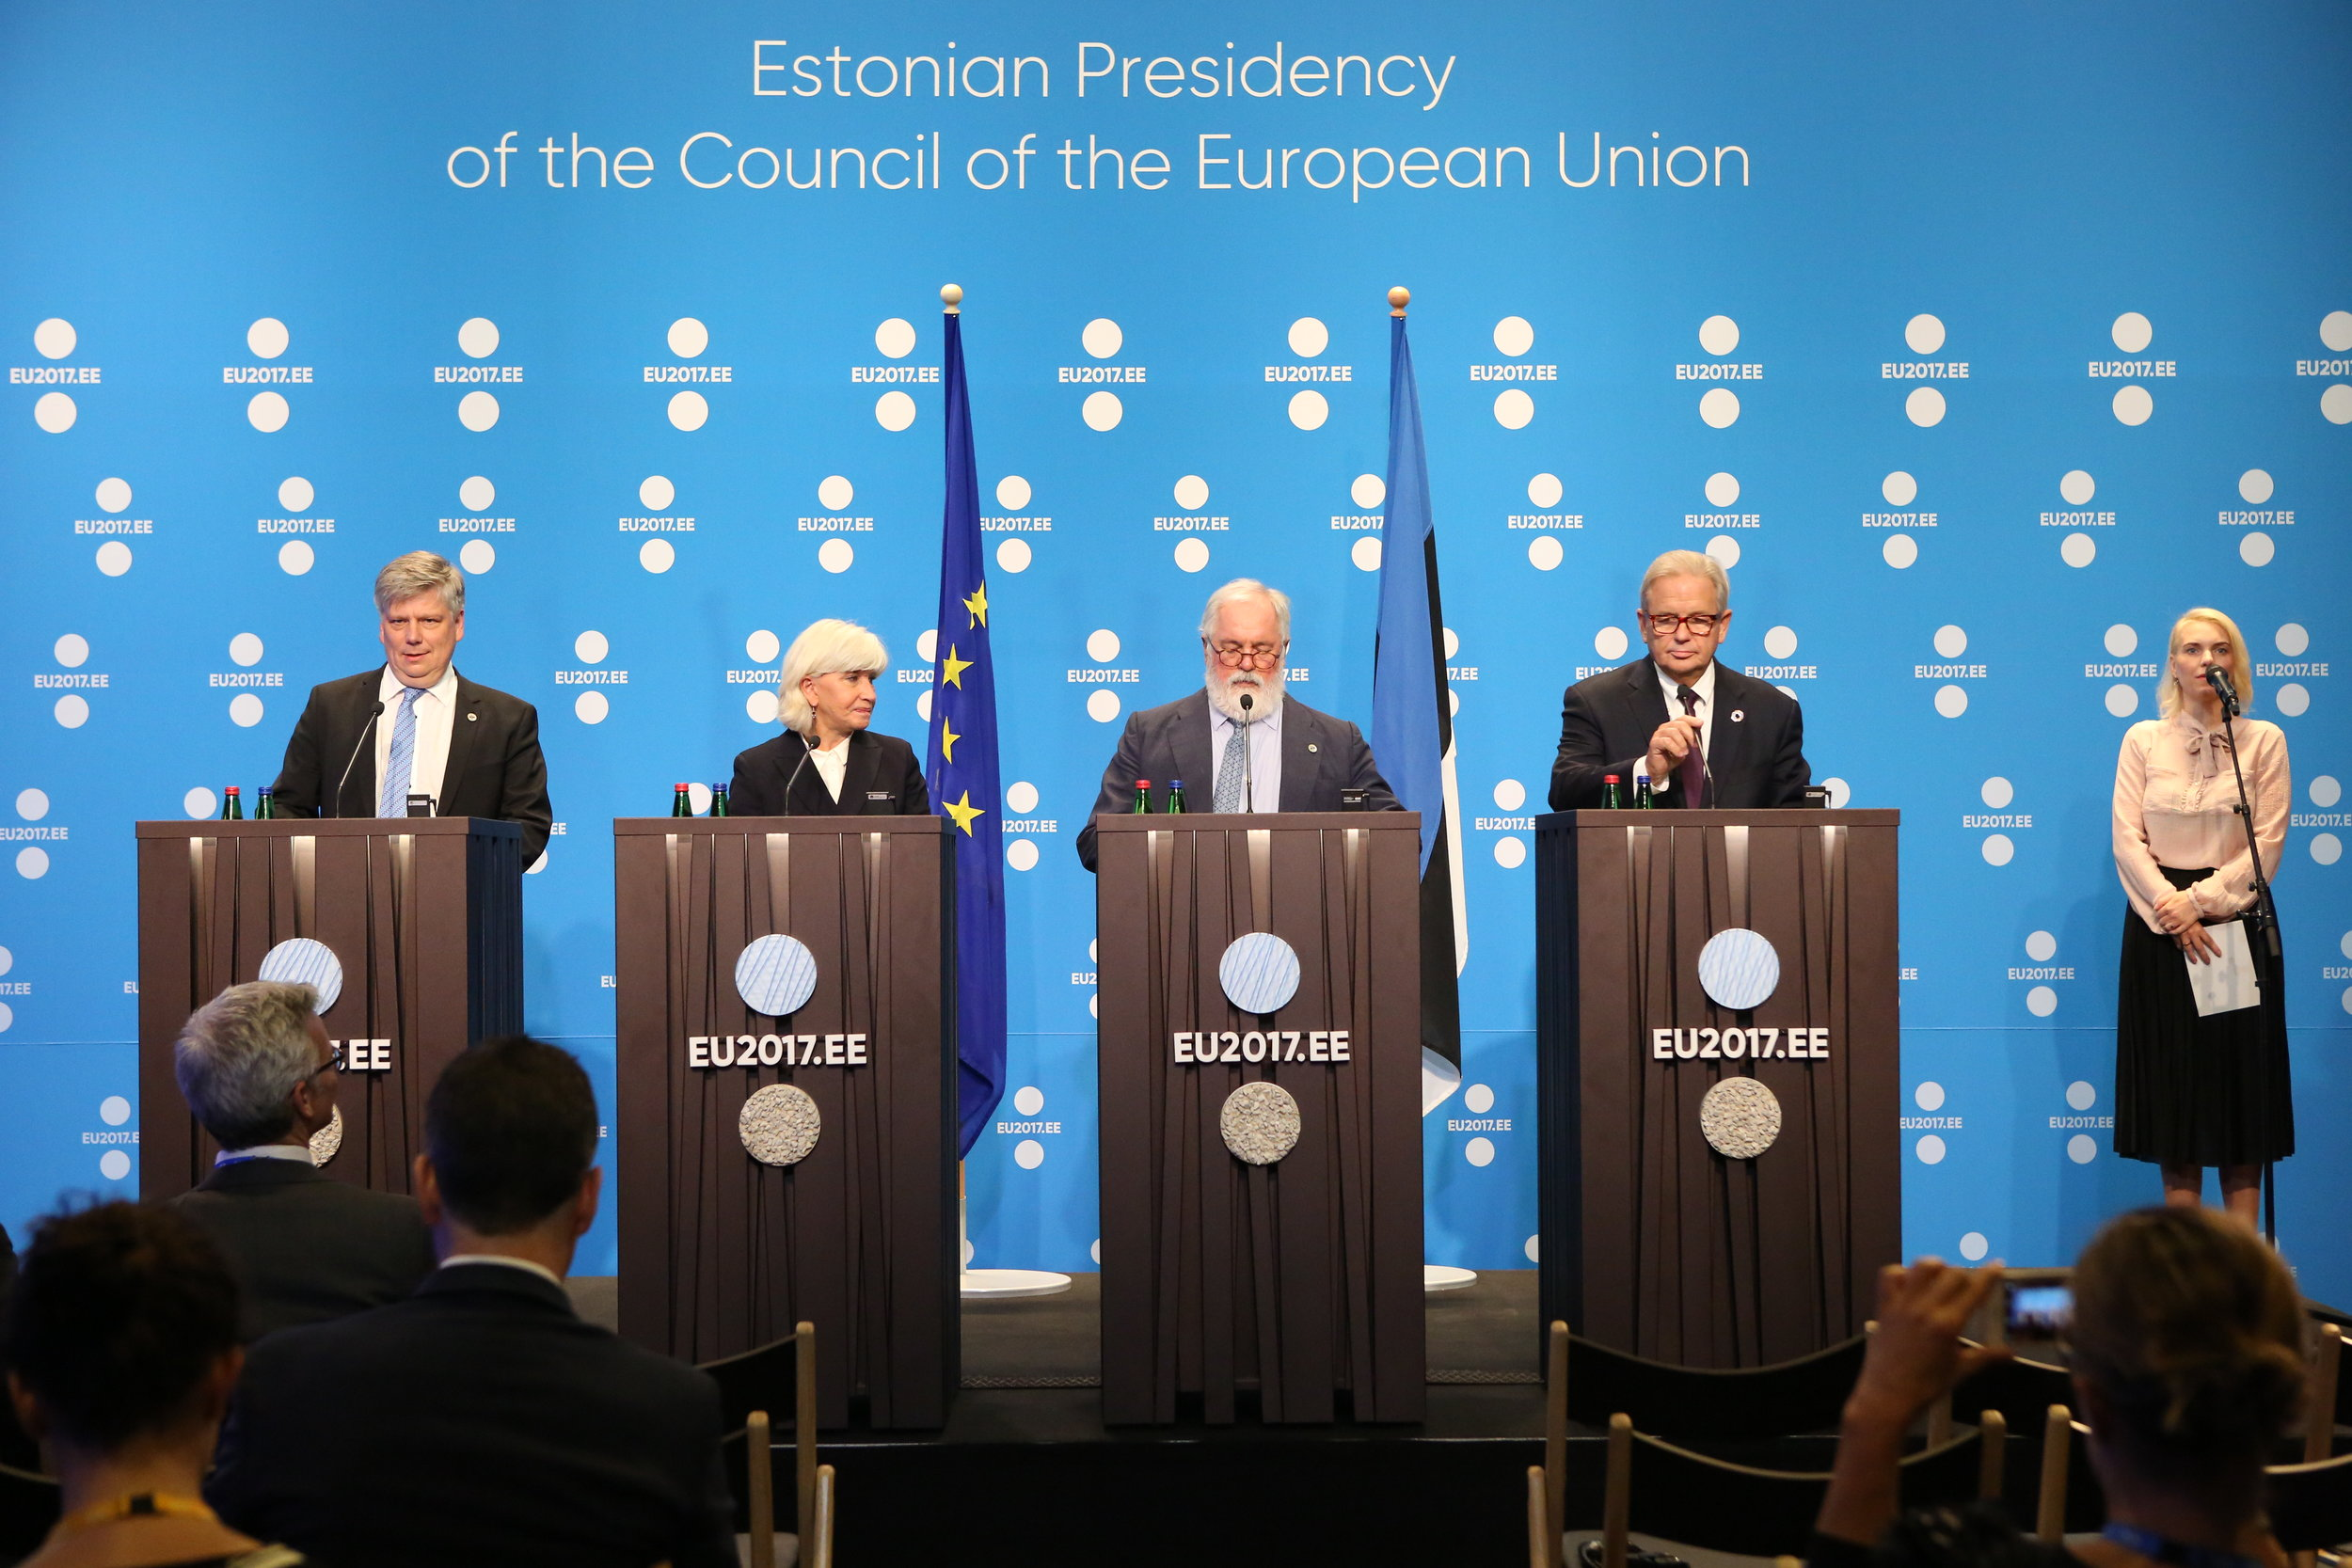 Siim Kiisler, the Minister of Environment of Estonia, Laurence Tubiana, the CEO of the European Climate Foundation, Miguel Arias Cañete, the EU Commissioner for Climate, Action, and Energy, and Chad Holliday, the Chairman of Royal Dutch Shell spoke at a gathering on Climate Change in 2017. (flickr)